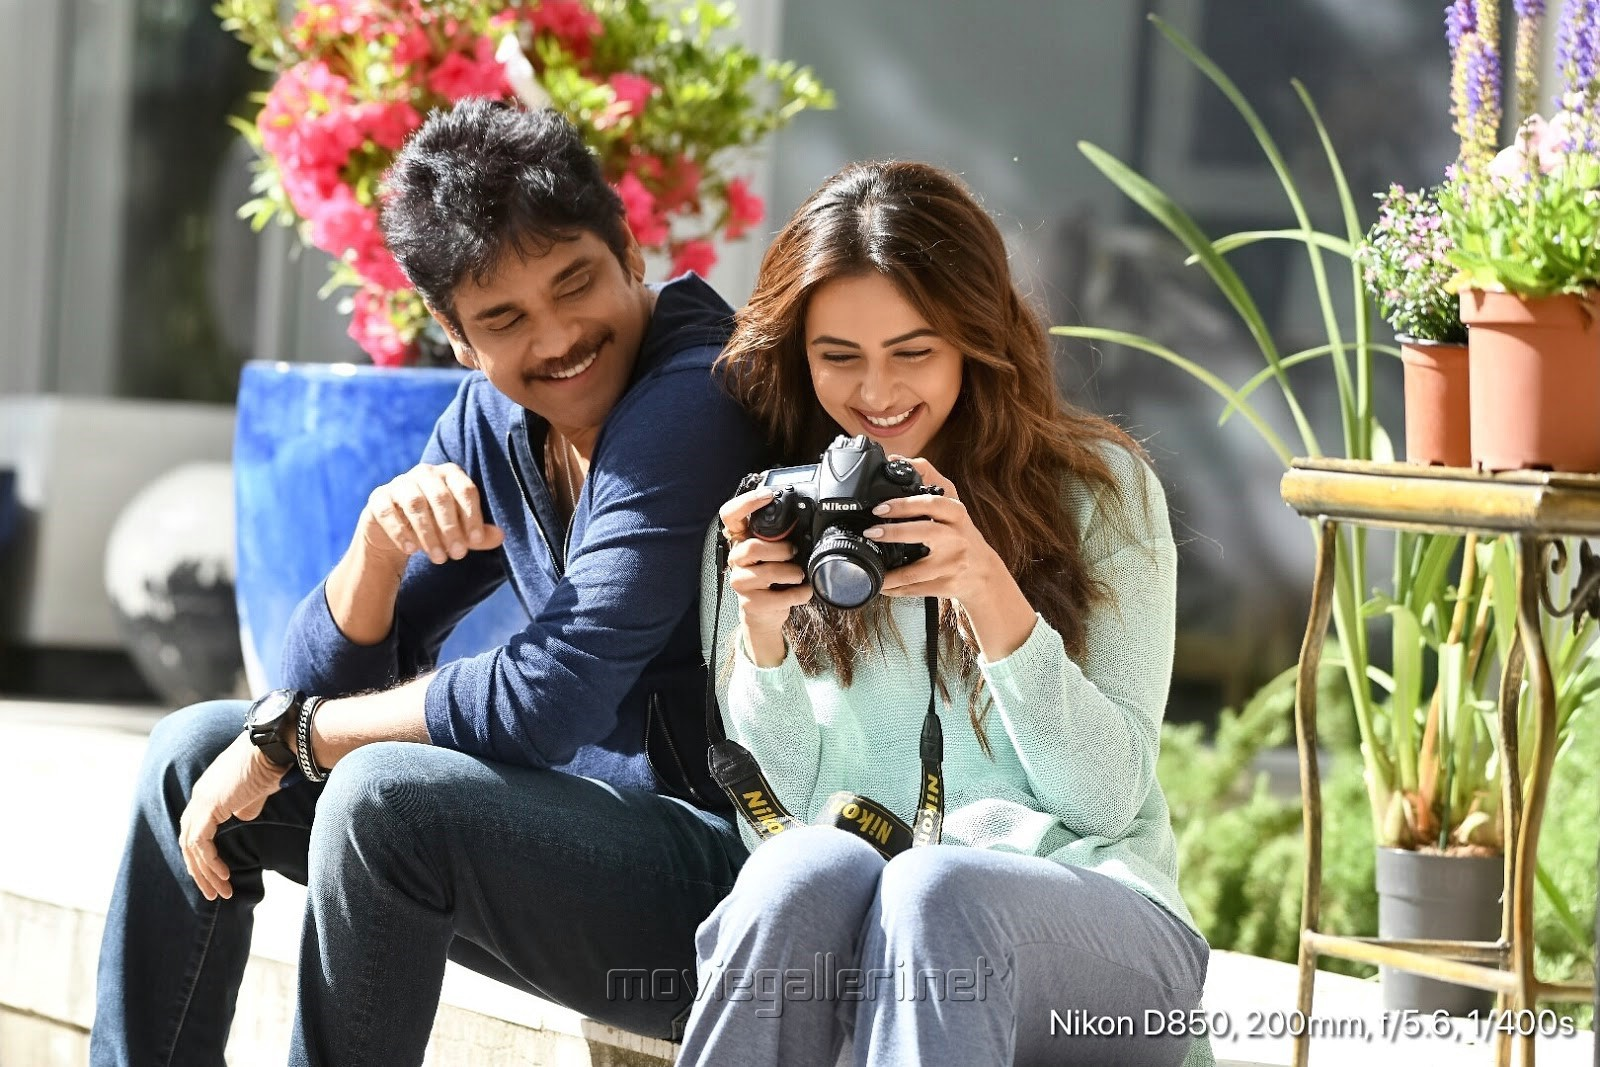 Nagarjuna, Rakul Preet Singh in Manmadhudu 2 Movie Stills HD